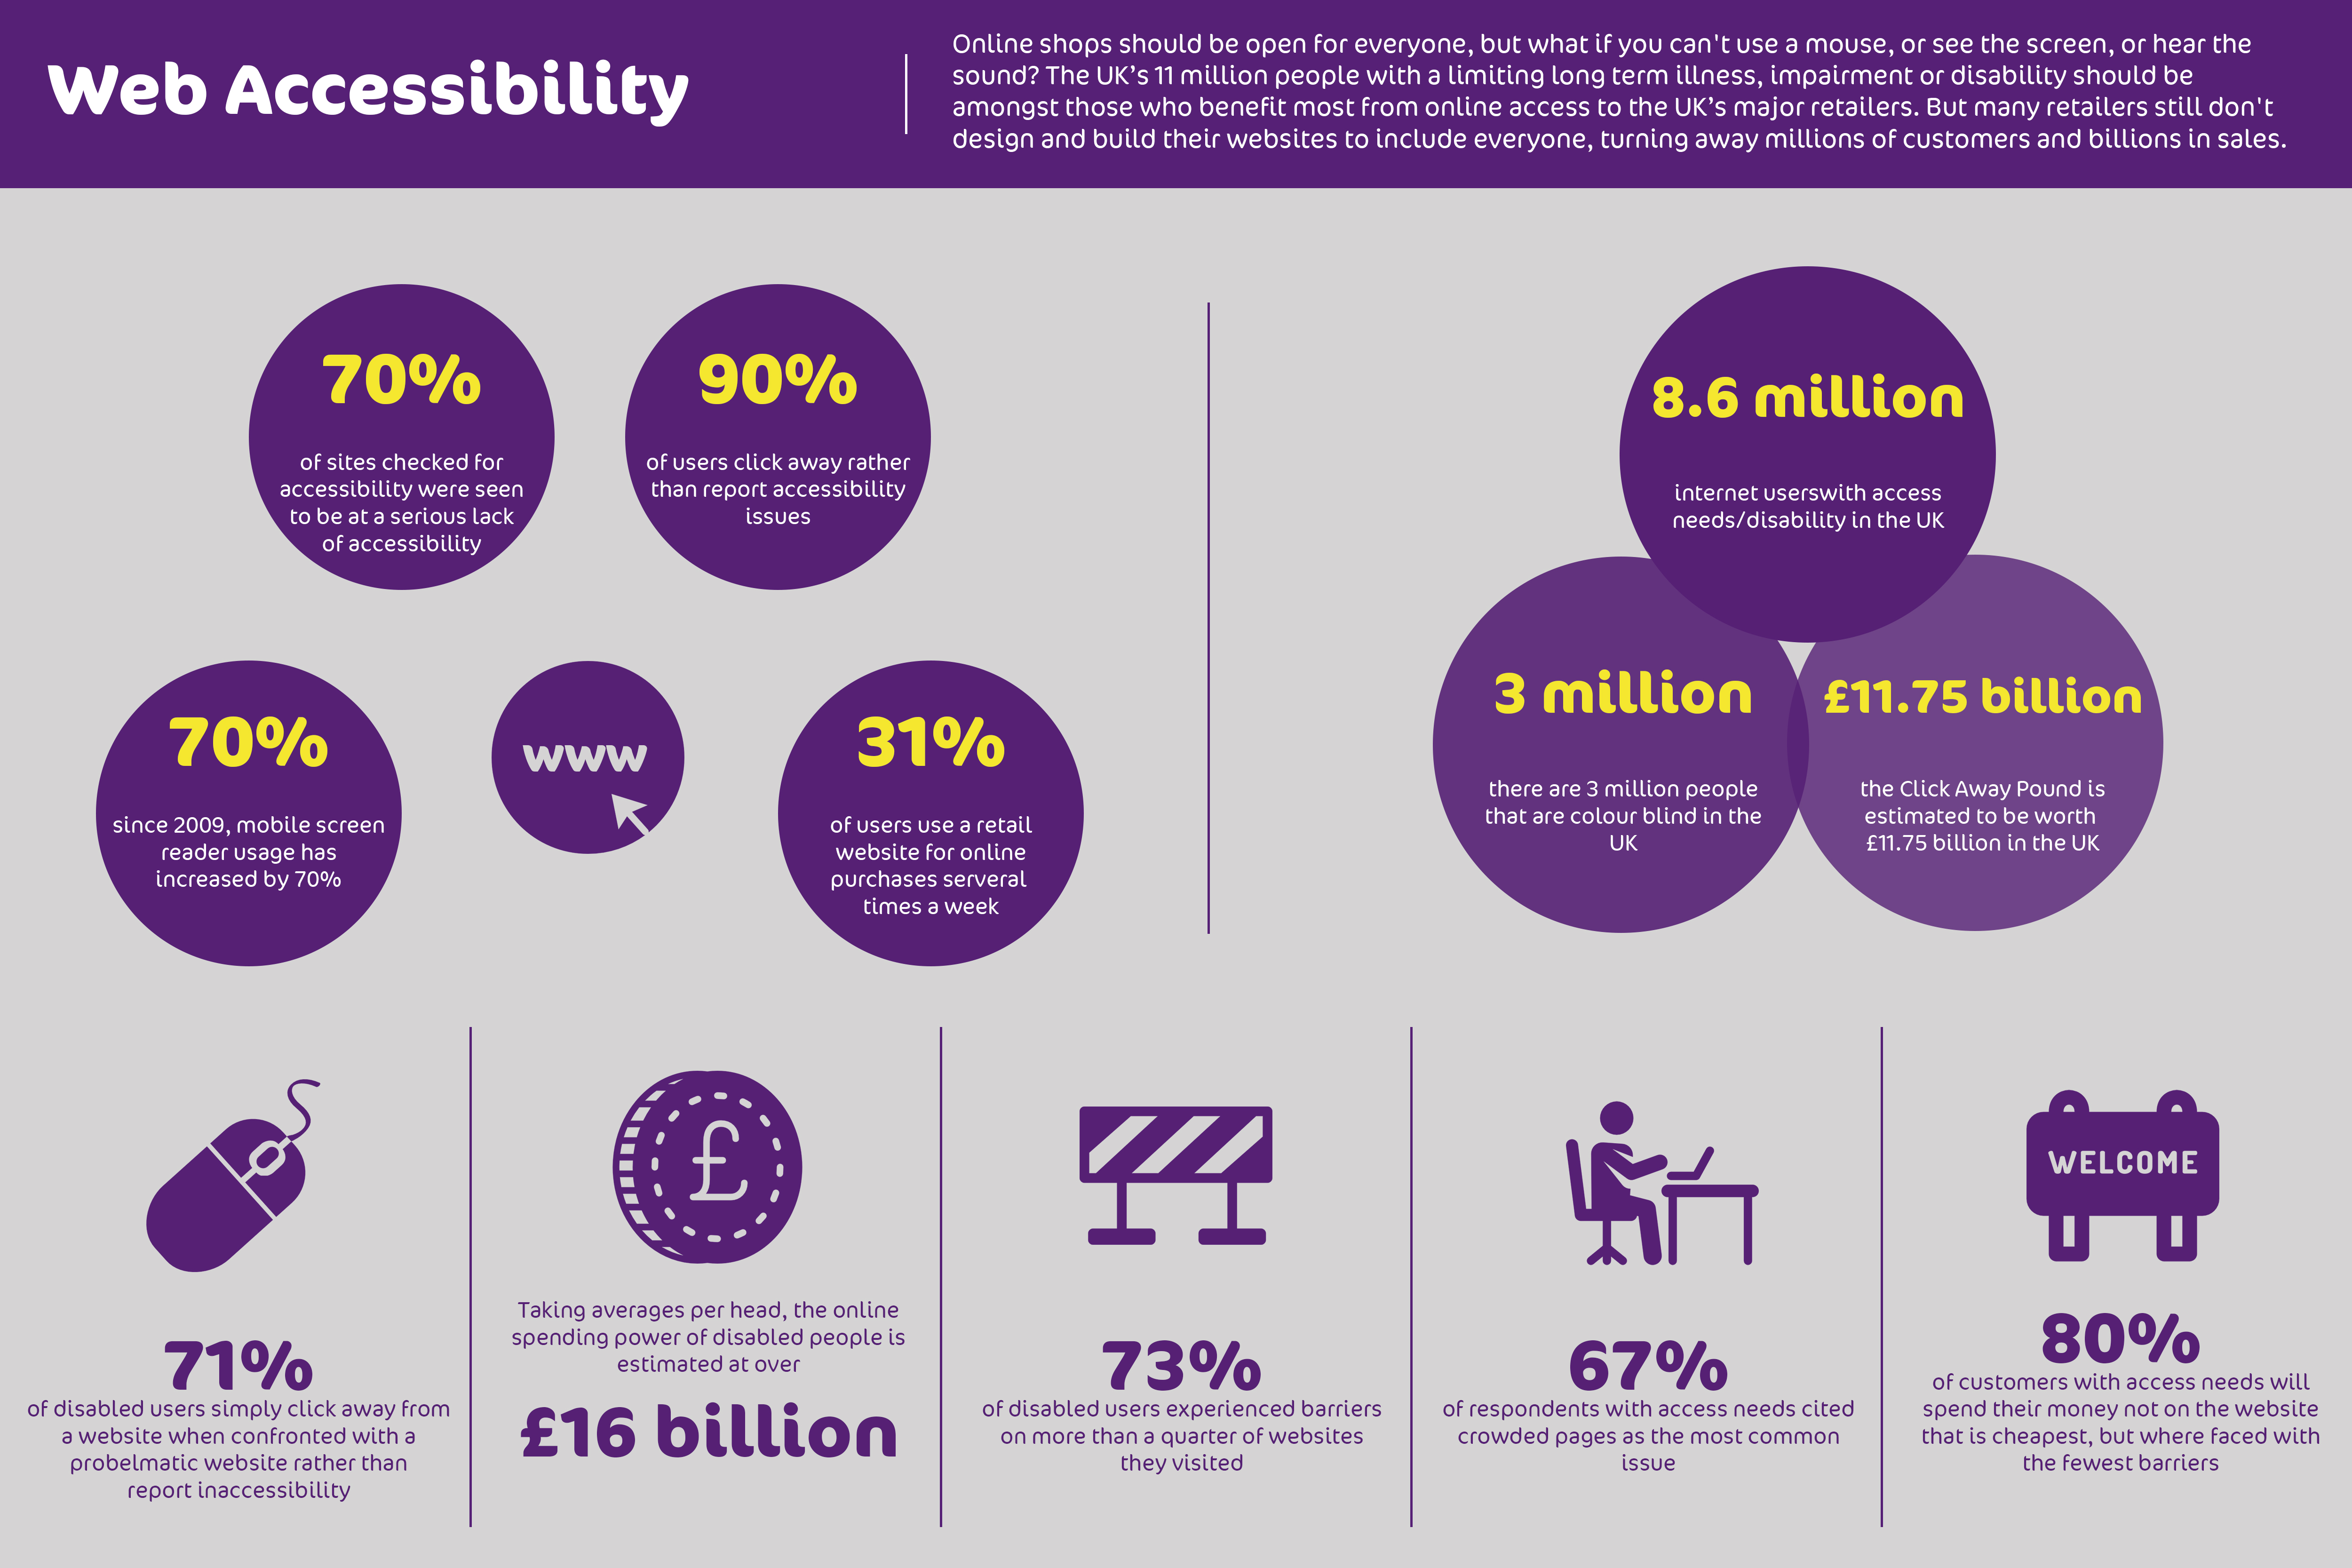 Infographic with facts and figures on web accessibility.